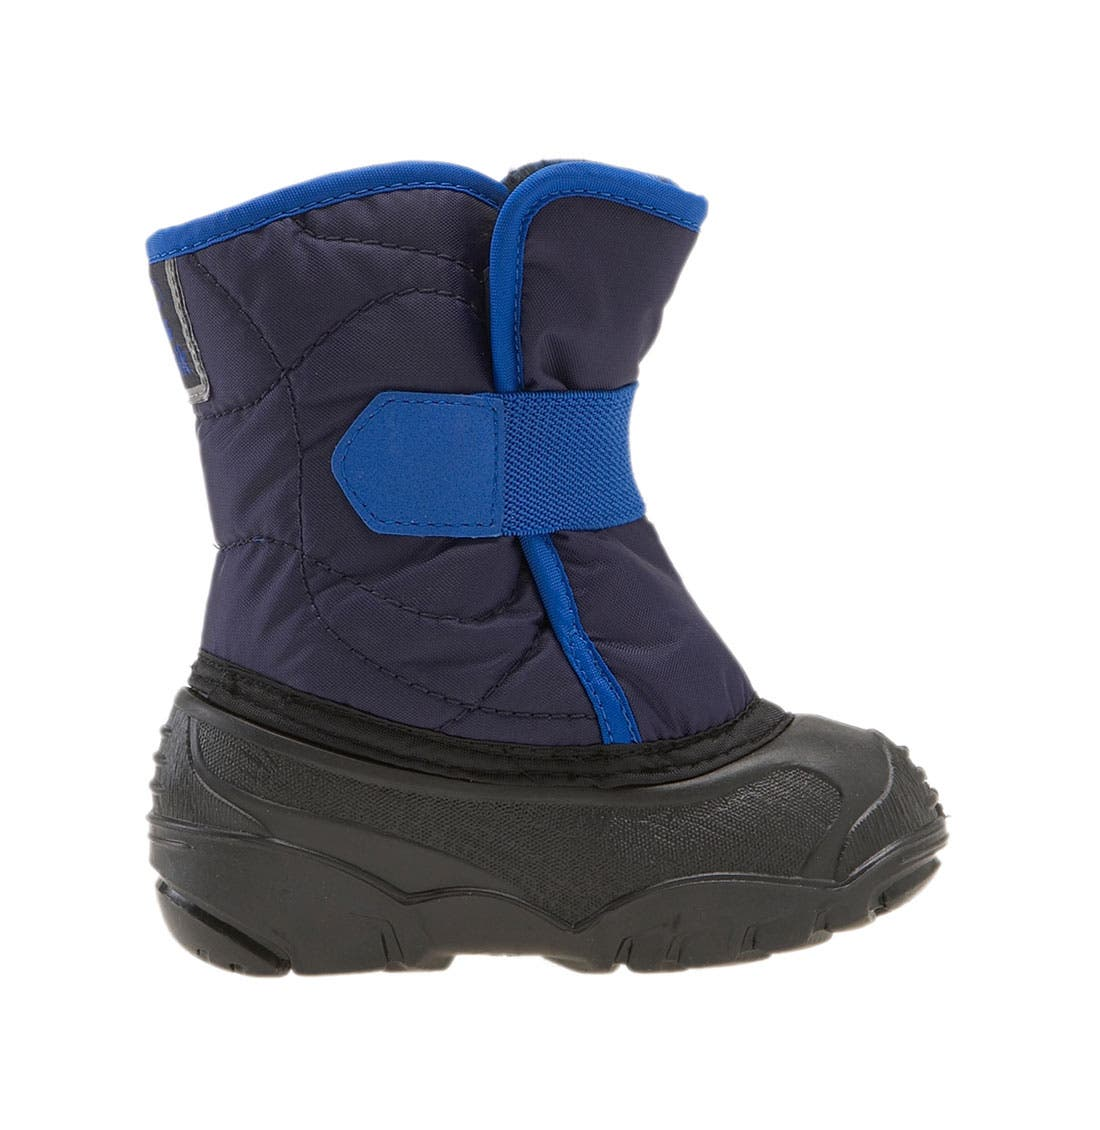 Alternate Image 2  - Kamik 'Snowbug' Waterproof Boot (Walker & Toddler)